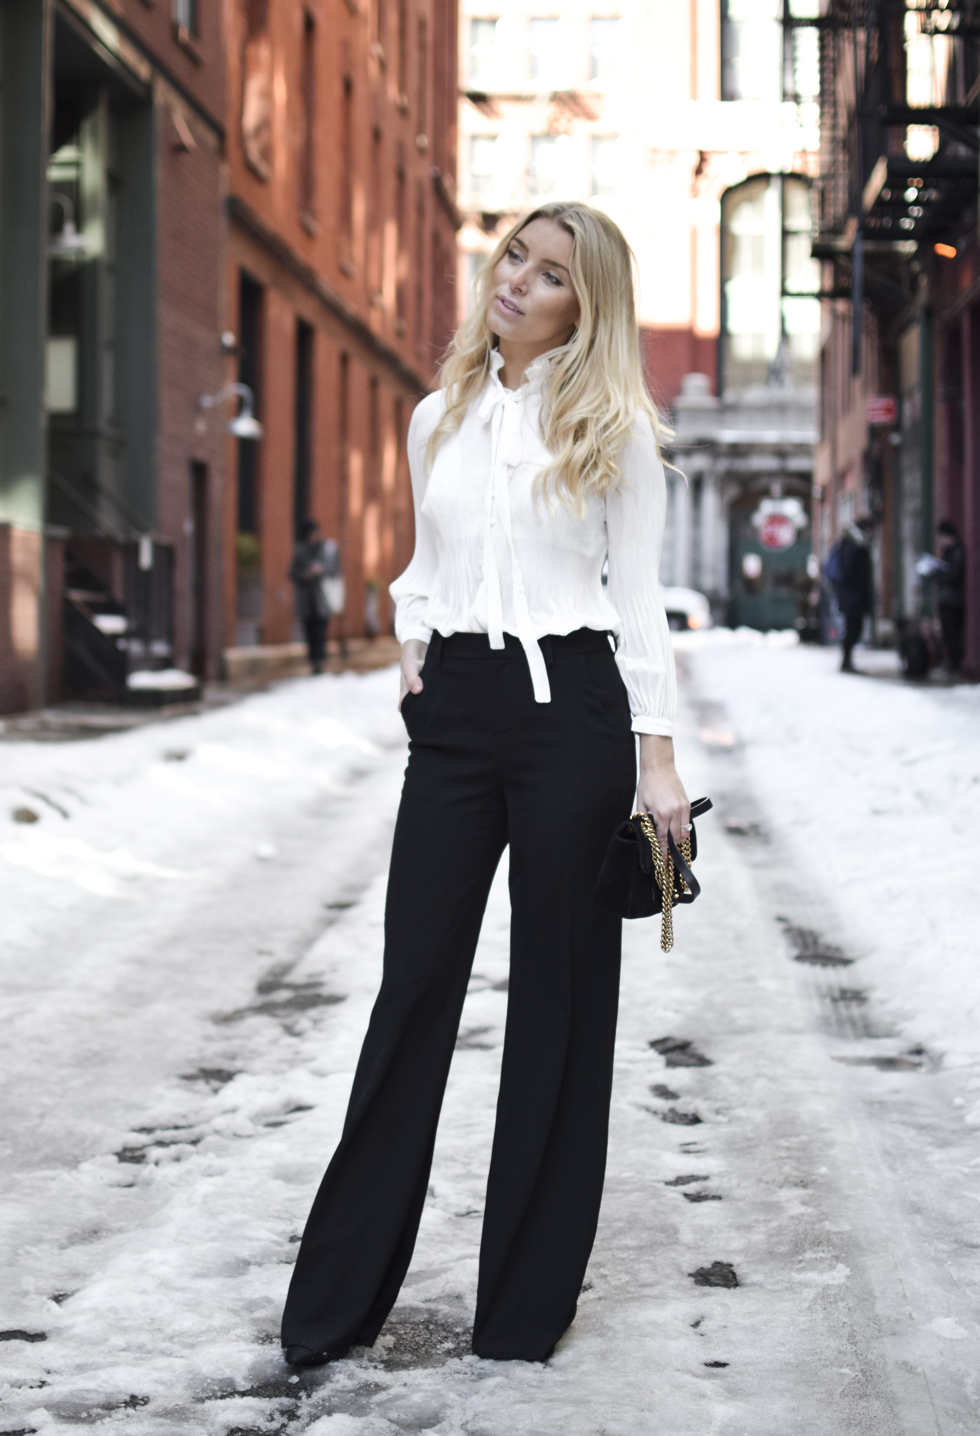 sanne_outfit_tribeca_new_york_2